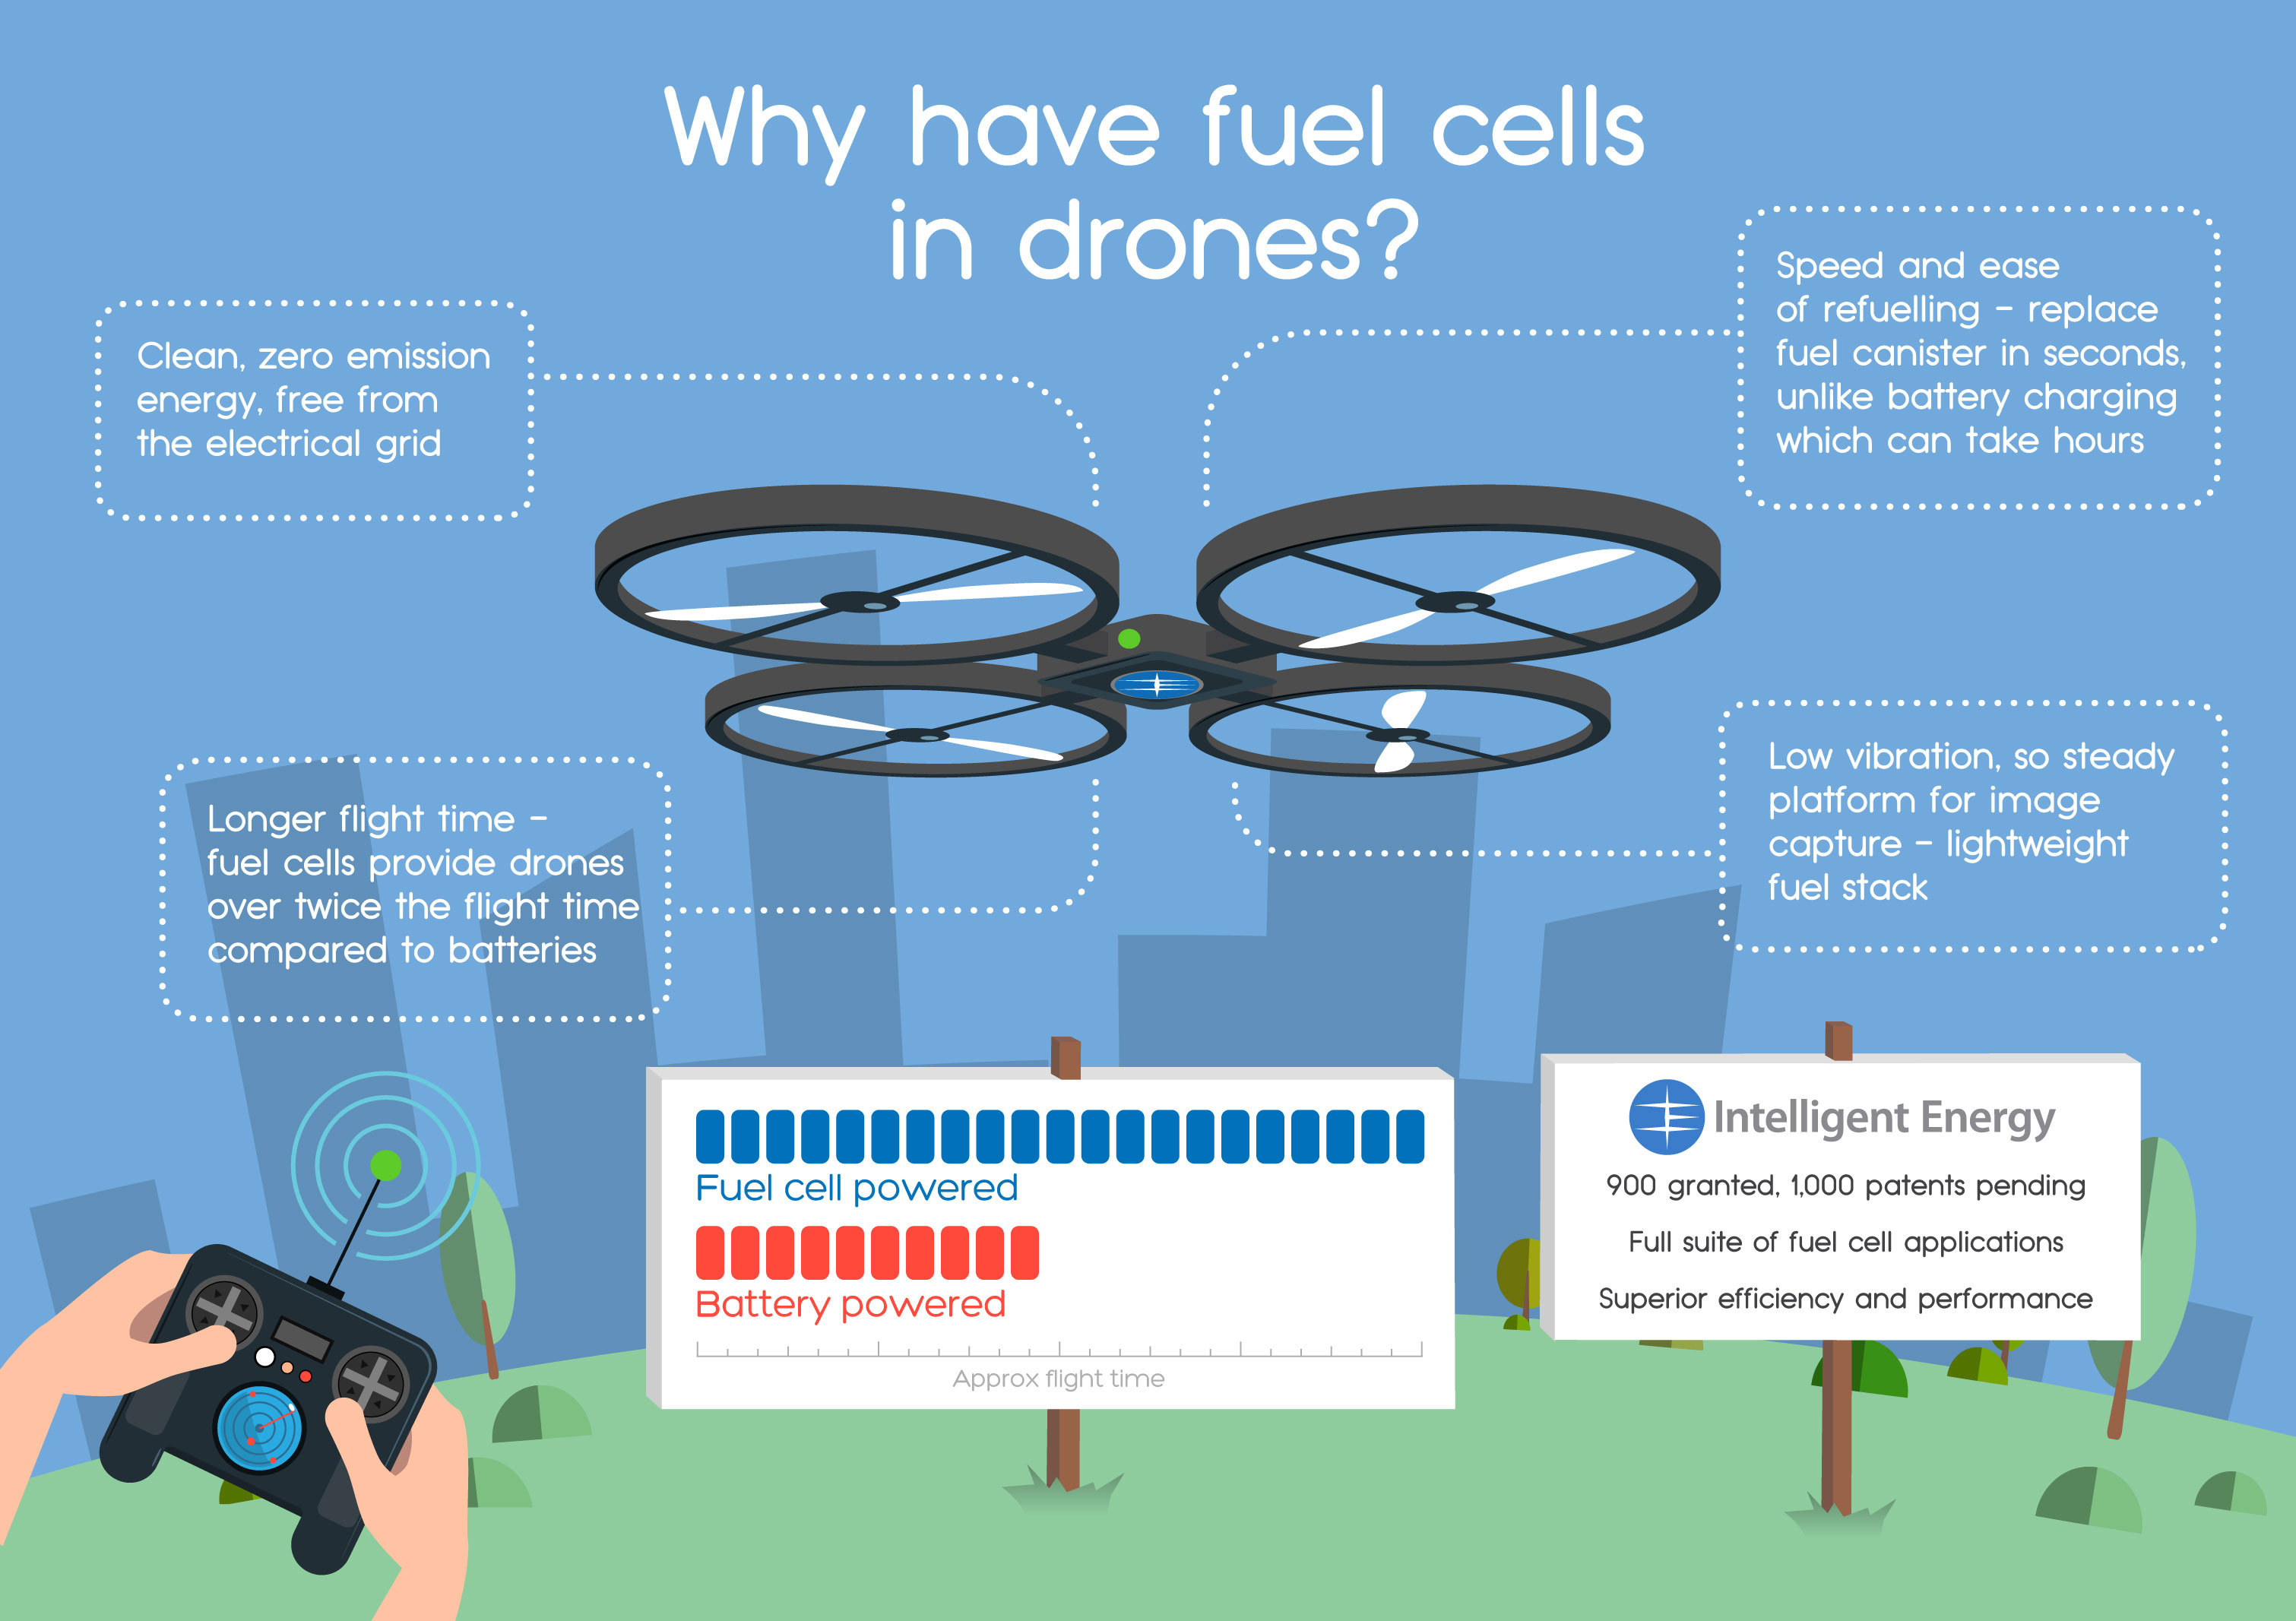 medium resolution of industrial applications of hydrogen fuel cells simple diagram business wire n d drone infographic retrieved 14th august 2018 from